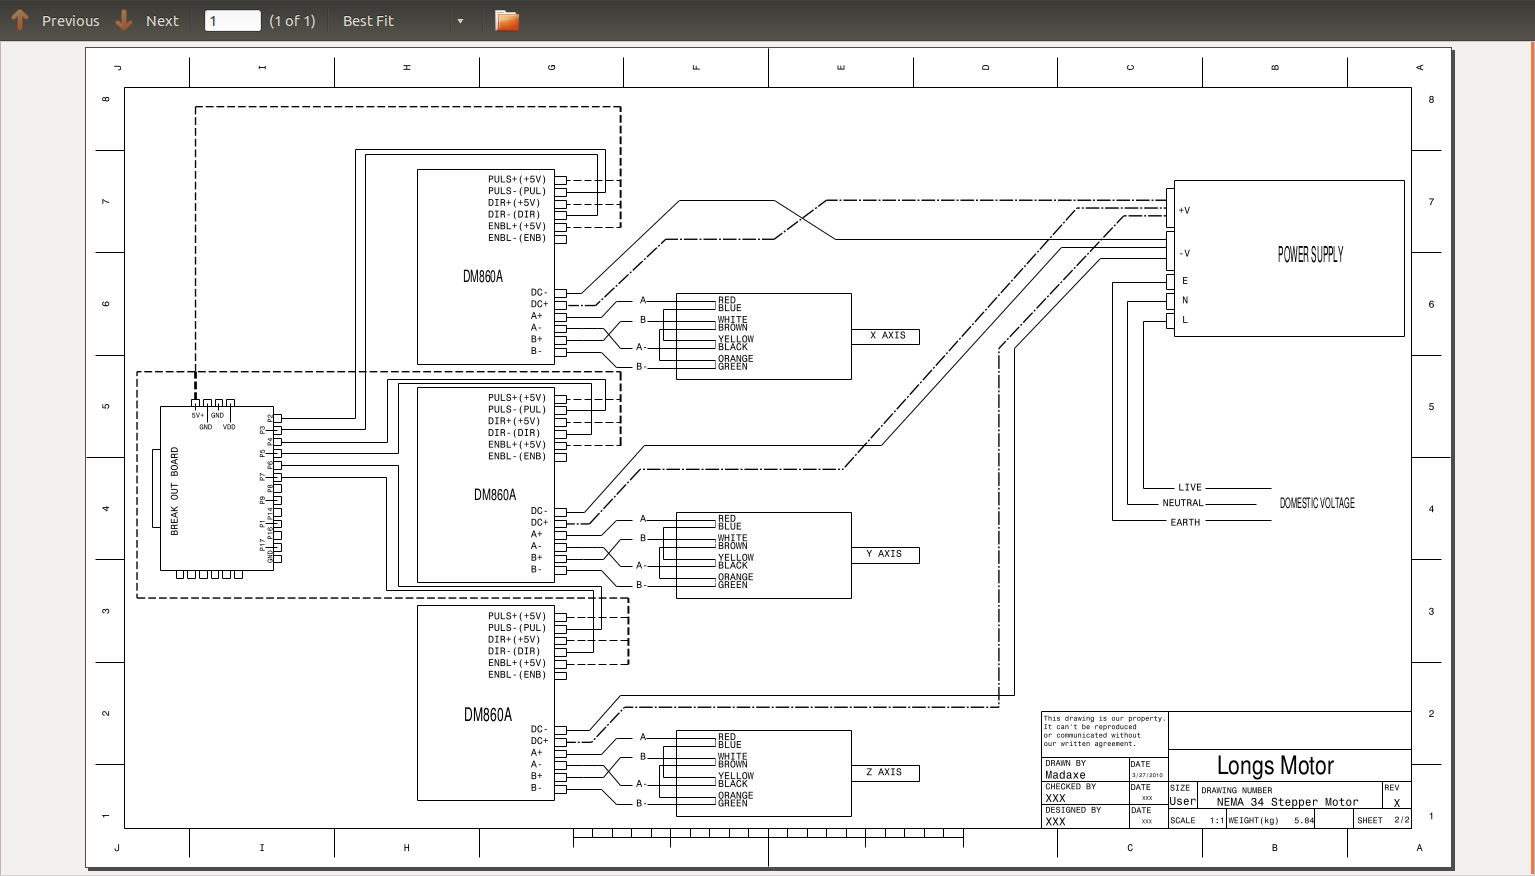 cnc wiring schematic   20 wiring diagram images